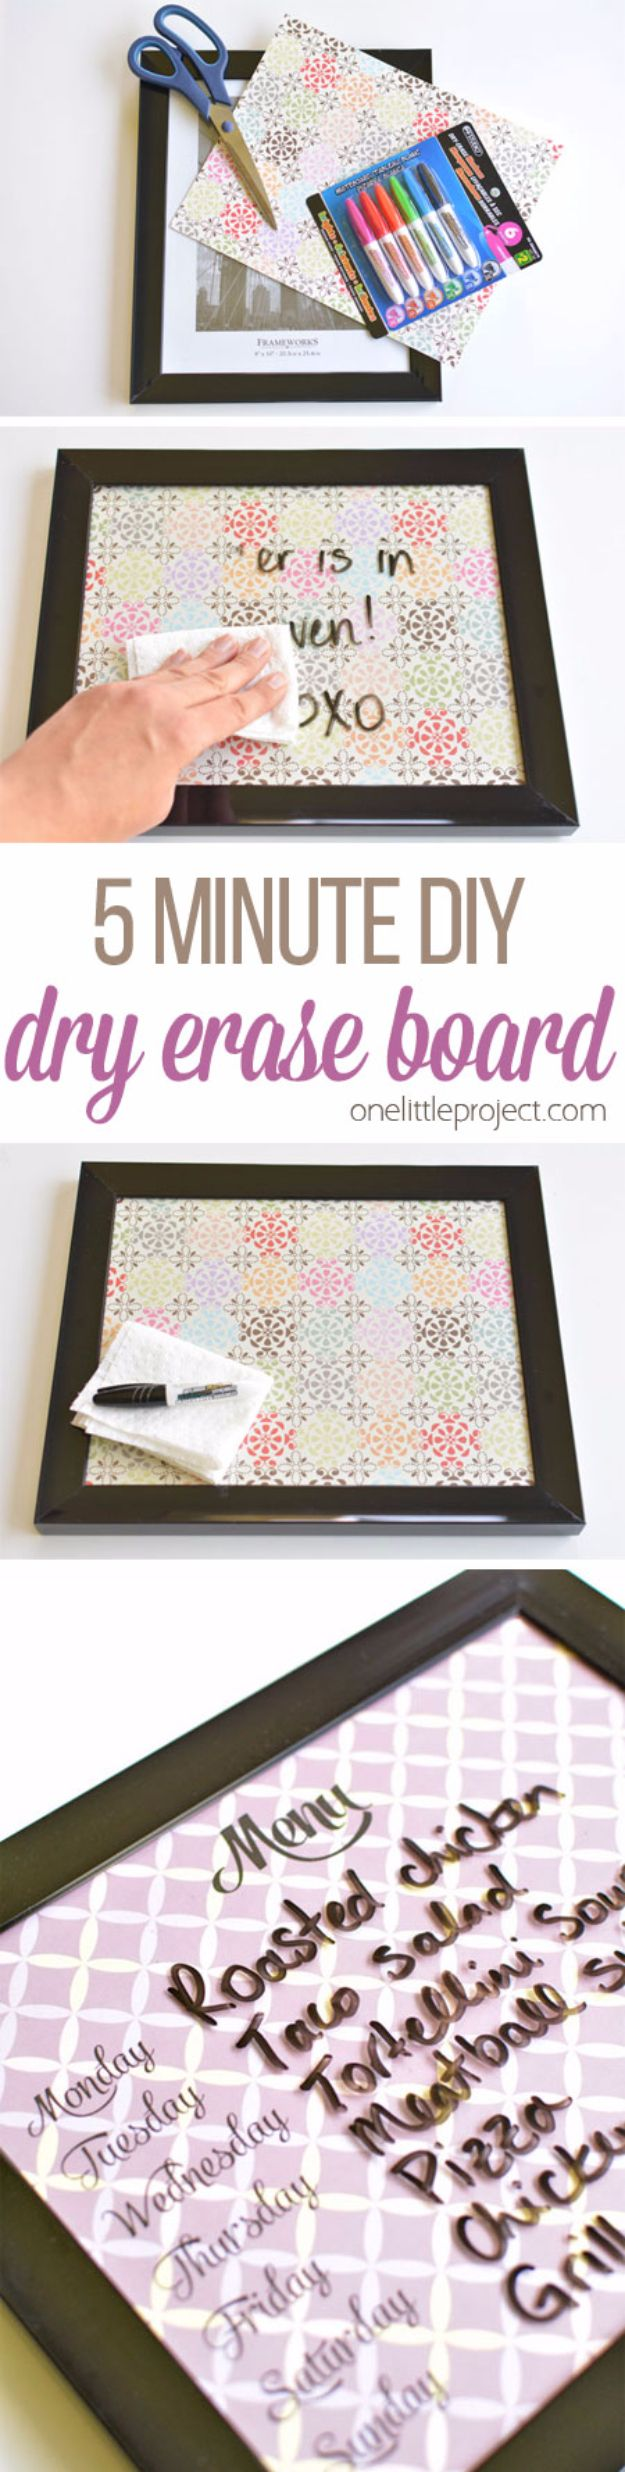 41 Easy DIY Projects and Craft Ideas Diy whiteboard